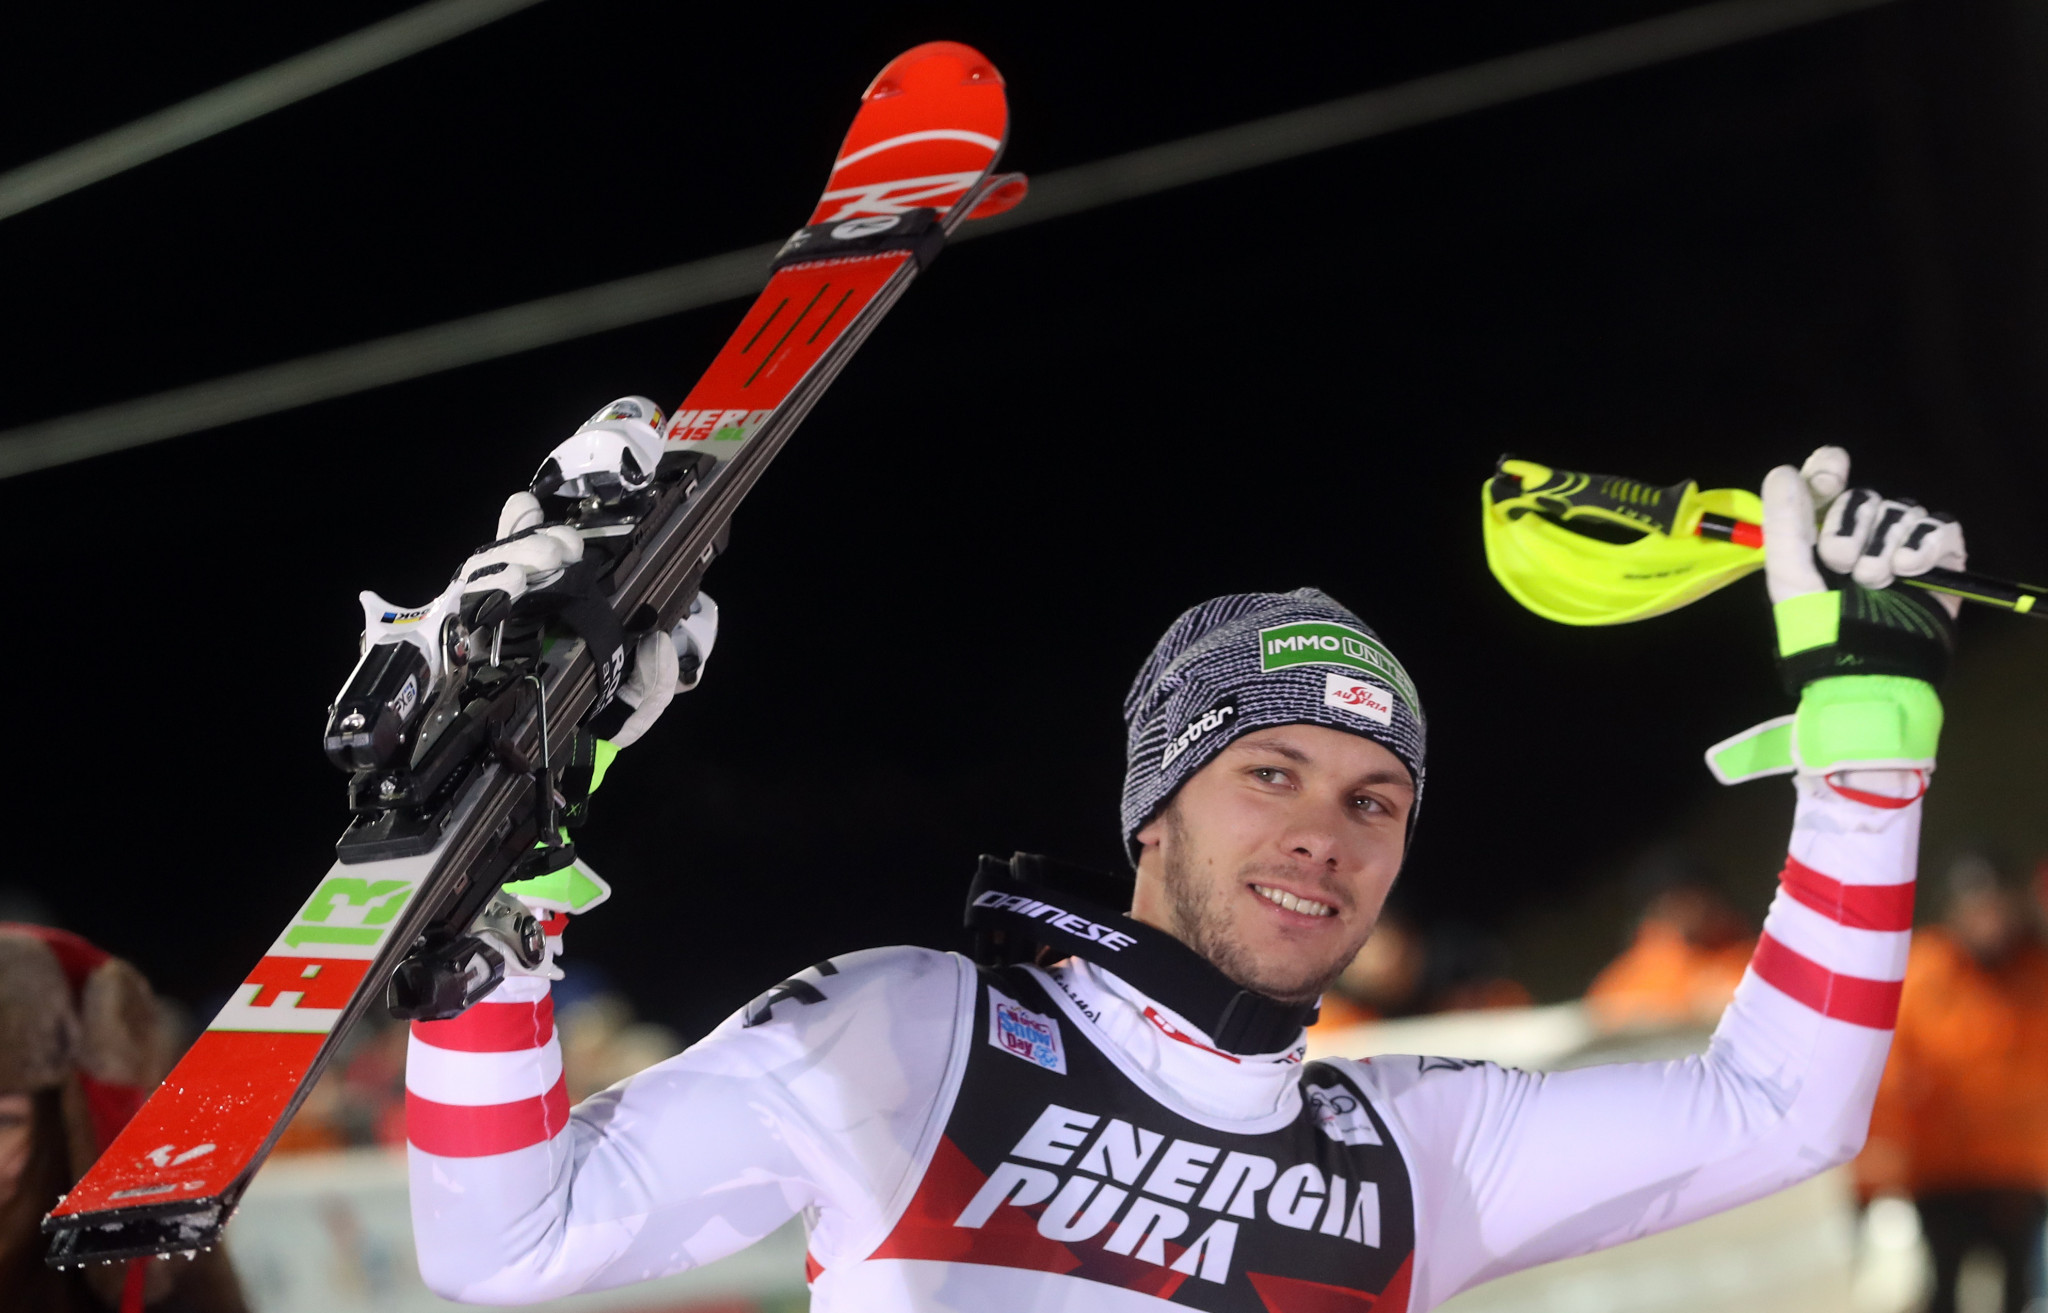 Michael Matt finished just 0.05 seconds beyond Hirscher to claim silver on Sljeme ©Getty Images